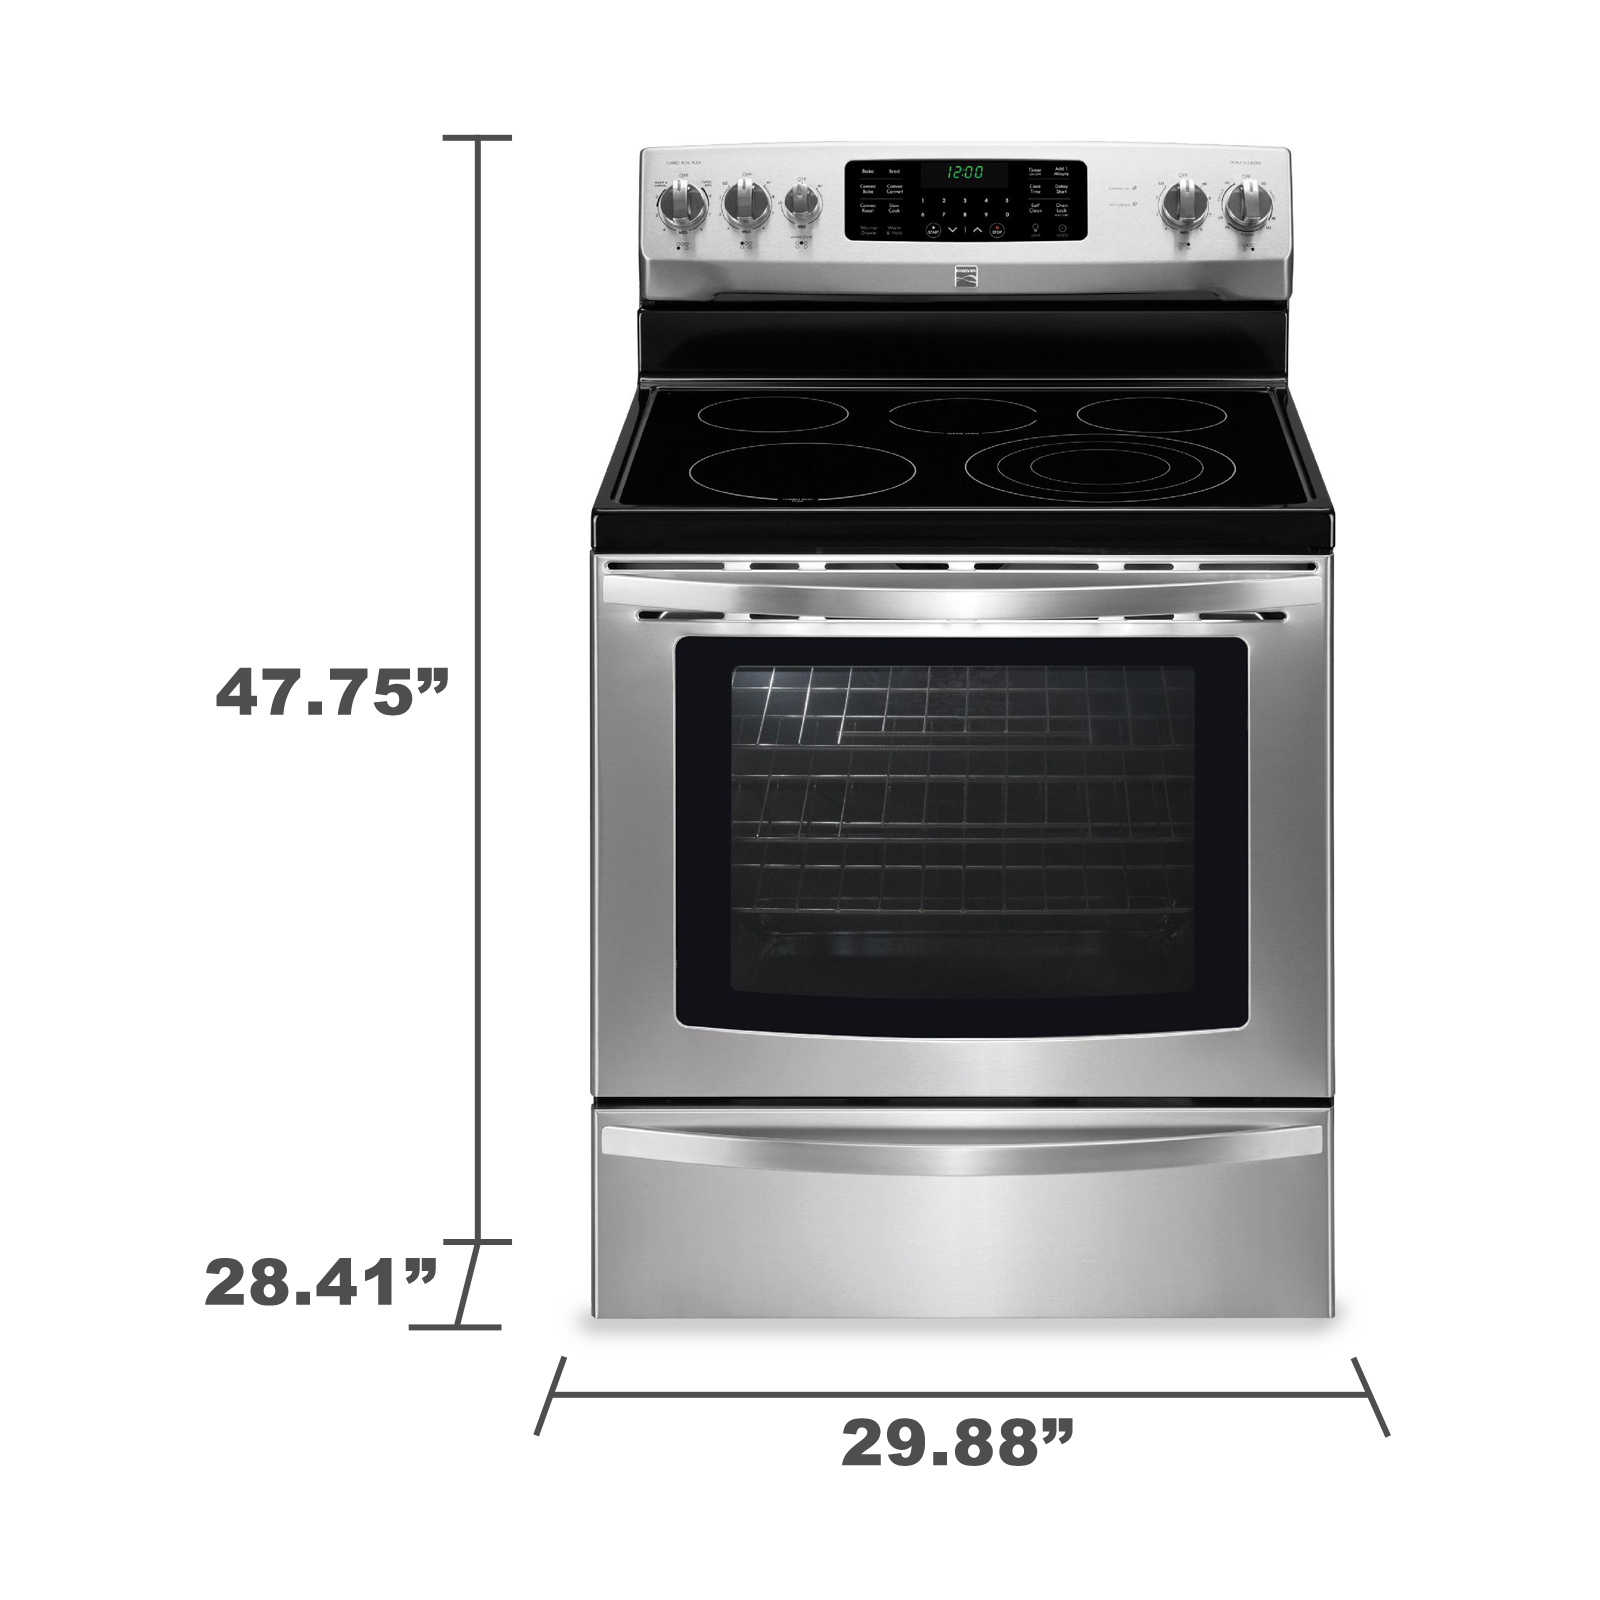 Kenmore 94243 5.8 cu. ft. Electric Range w/ True Convection - Stainless Steel